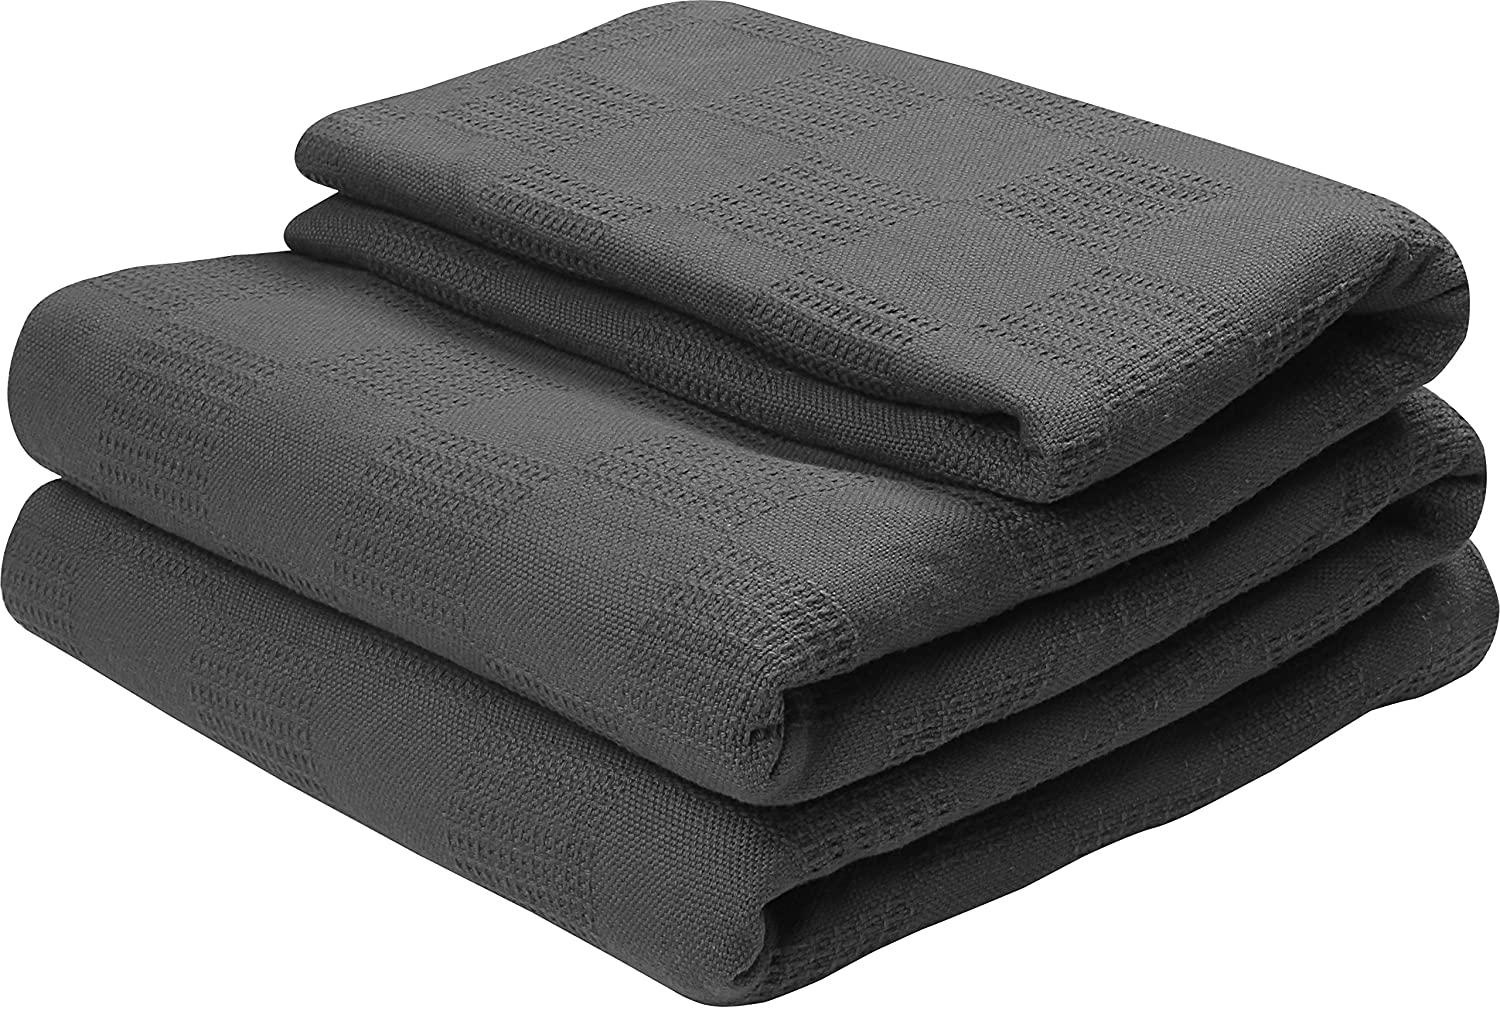 Utopia bedding 100% Premium Woven Cotton Blanket (Full/Queen, Smoke Grey) Breathable Cotton Throw Blanket and Quilt for Bed & Couch/Sofa